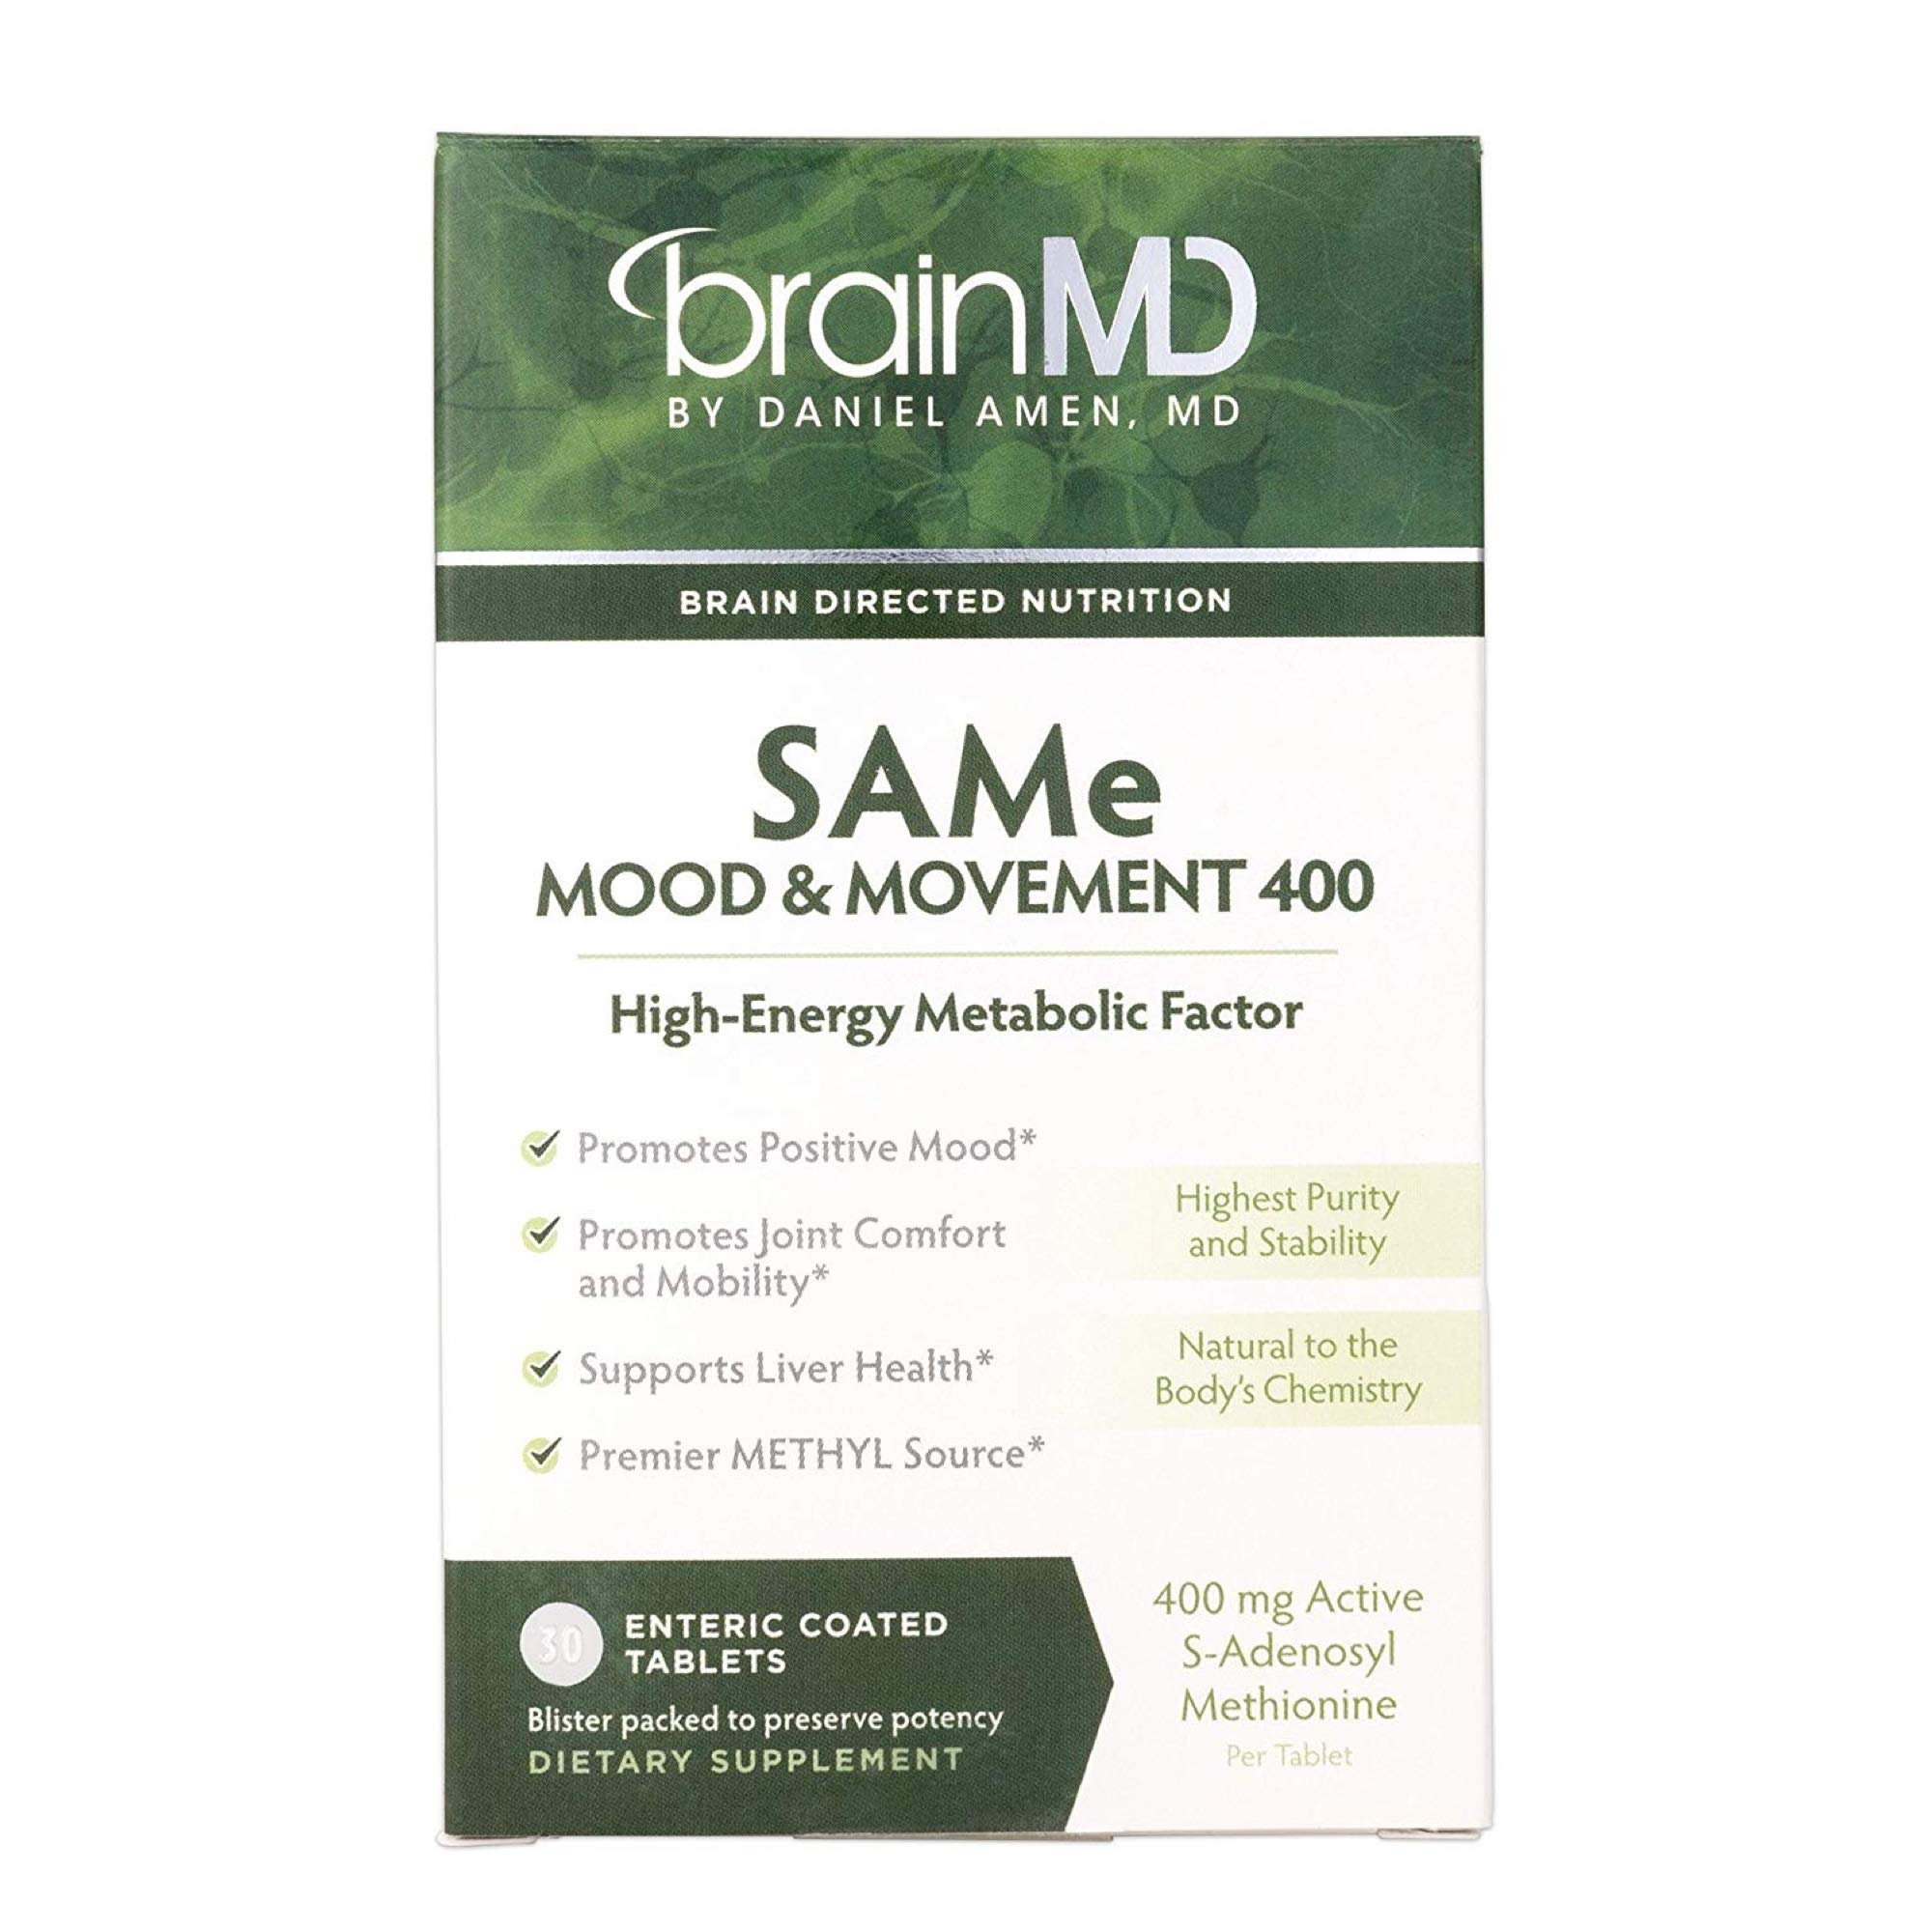 Dr. Amen brainMD Same Mood & Movement - 400 mg, 30 Tablets - Promotes Emotional Balance & Liver Health, Joint Support Supplement, Energy Booster - Gluten-Free - 30 Servings